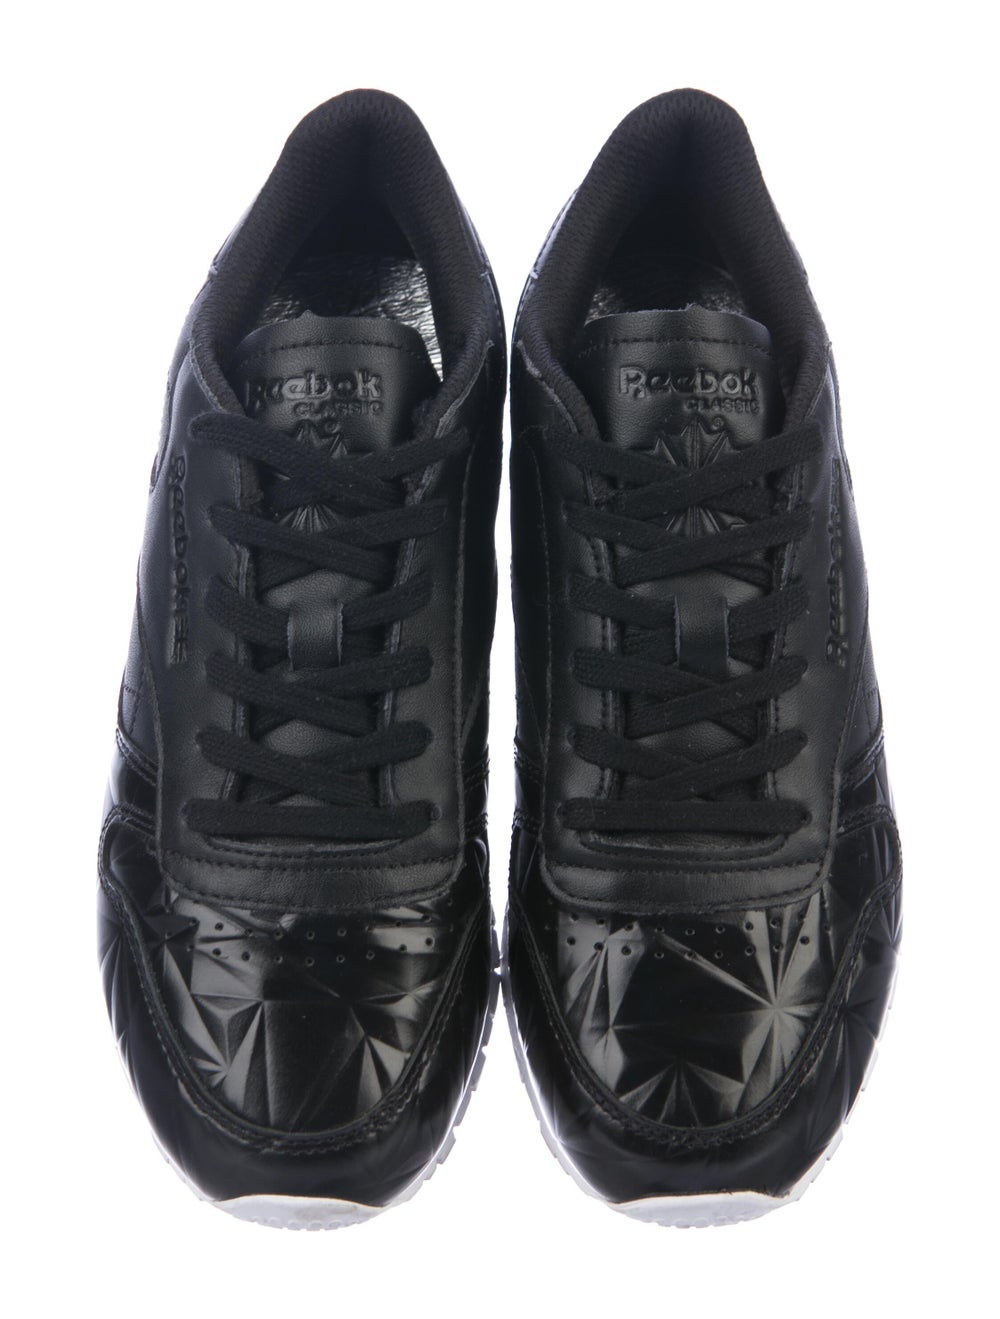 Reebok by Victoria Beckham Leather Low-Top Sneake… - image 3